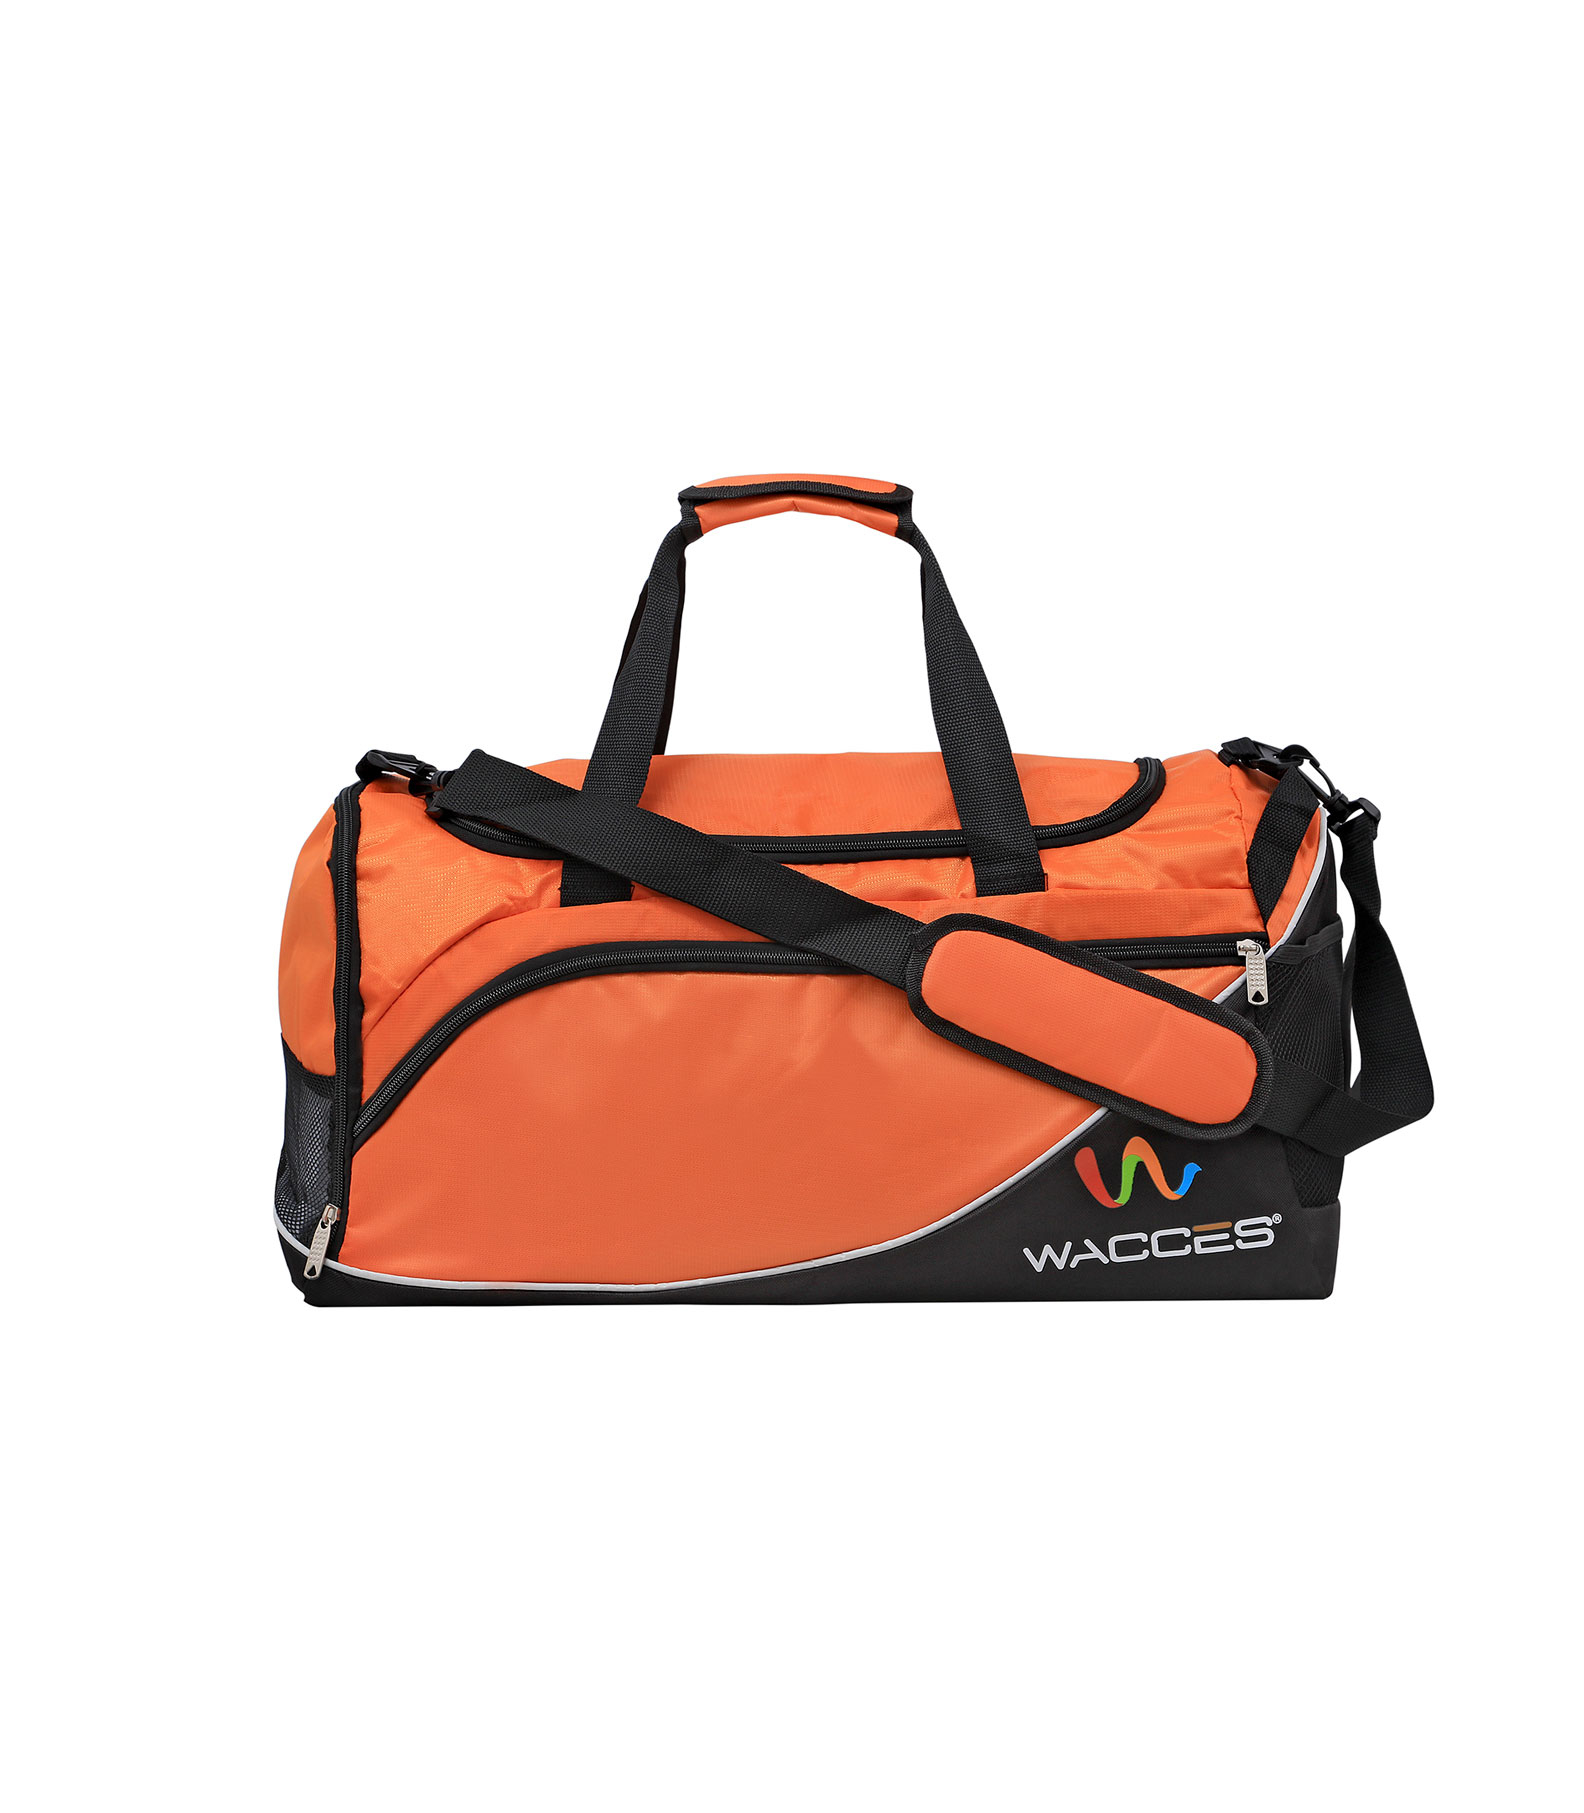 Wacces Lightweight Sport Gym Travel Duffle Bag with Shoe Punch - Medium